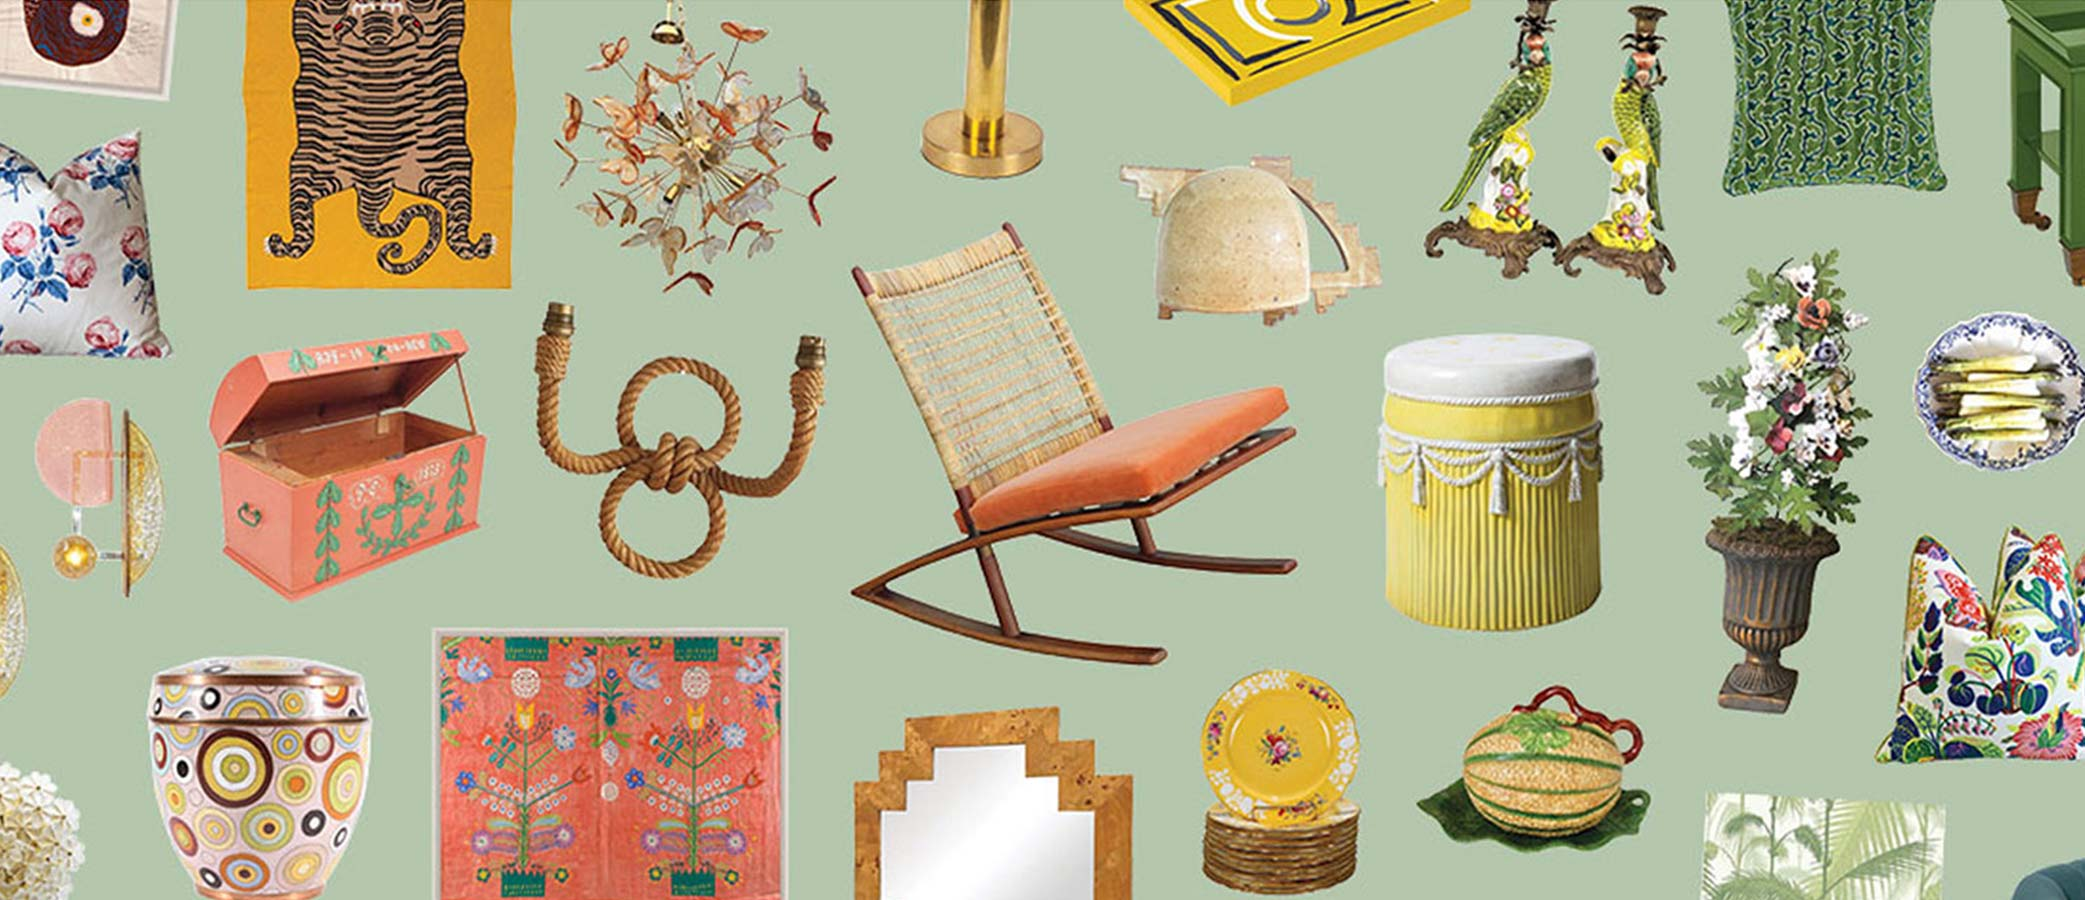 Collage of various furnishings upon greenish background